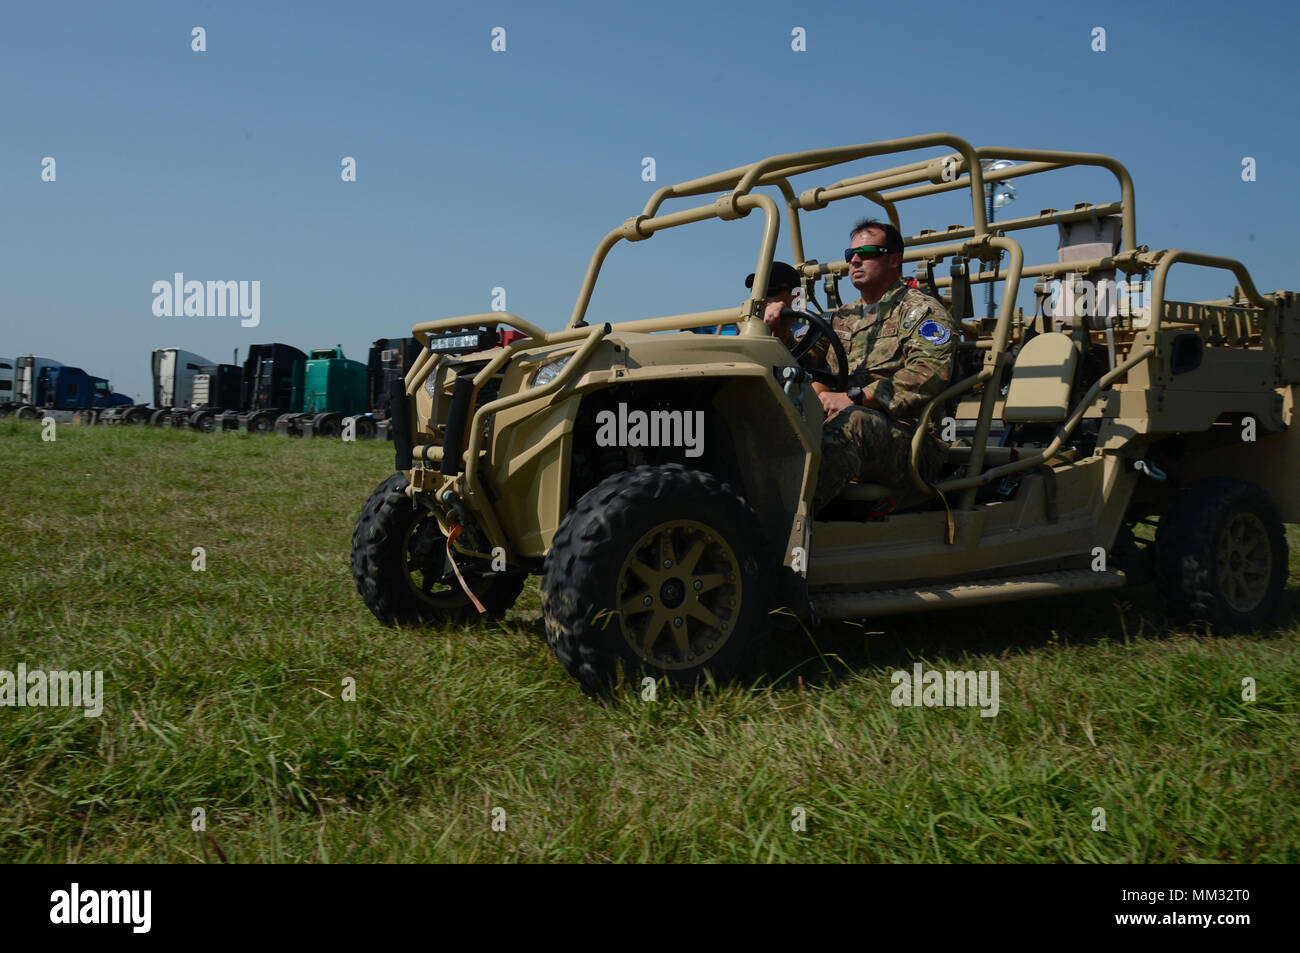 Tech Sgt. Justin, 350 Battlefield Airman Training Squadron combat controller, and Staff Sgt. Mason, 350 Battlefield Airman Training Squadron Pararescueman, depart in a Light Tactical All terrain Vehicle (LTATV) to clear an active runway of unauthorized access at JBSA Randolph auxiliary airfield, Seguin, Texas, Sept. 1, 2017. Justin and Mason are supporting FEMA's disaster-relief efforts after hurricane Harvey, a category-4 hurricane with 130 mph winds as it made landfall, Aug. 25, 2017, caused more than 50 inches of rain and flooding in the coastal regions. (U.S. Air Force Photo by Tech. Sgt.  Stock Photo